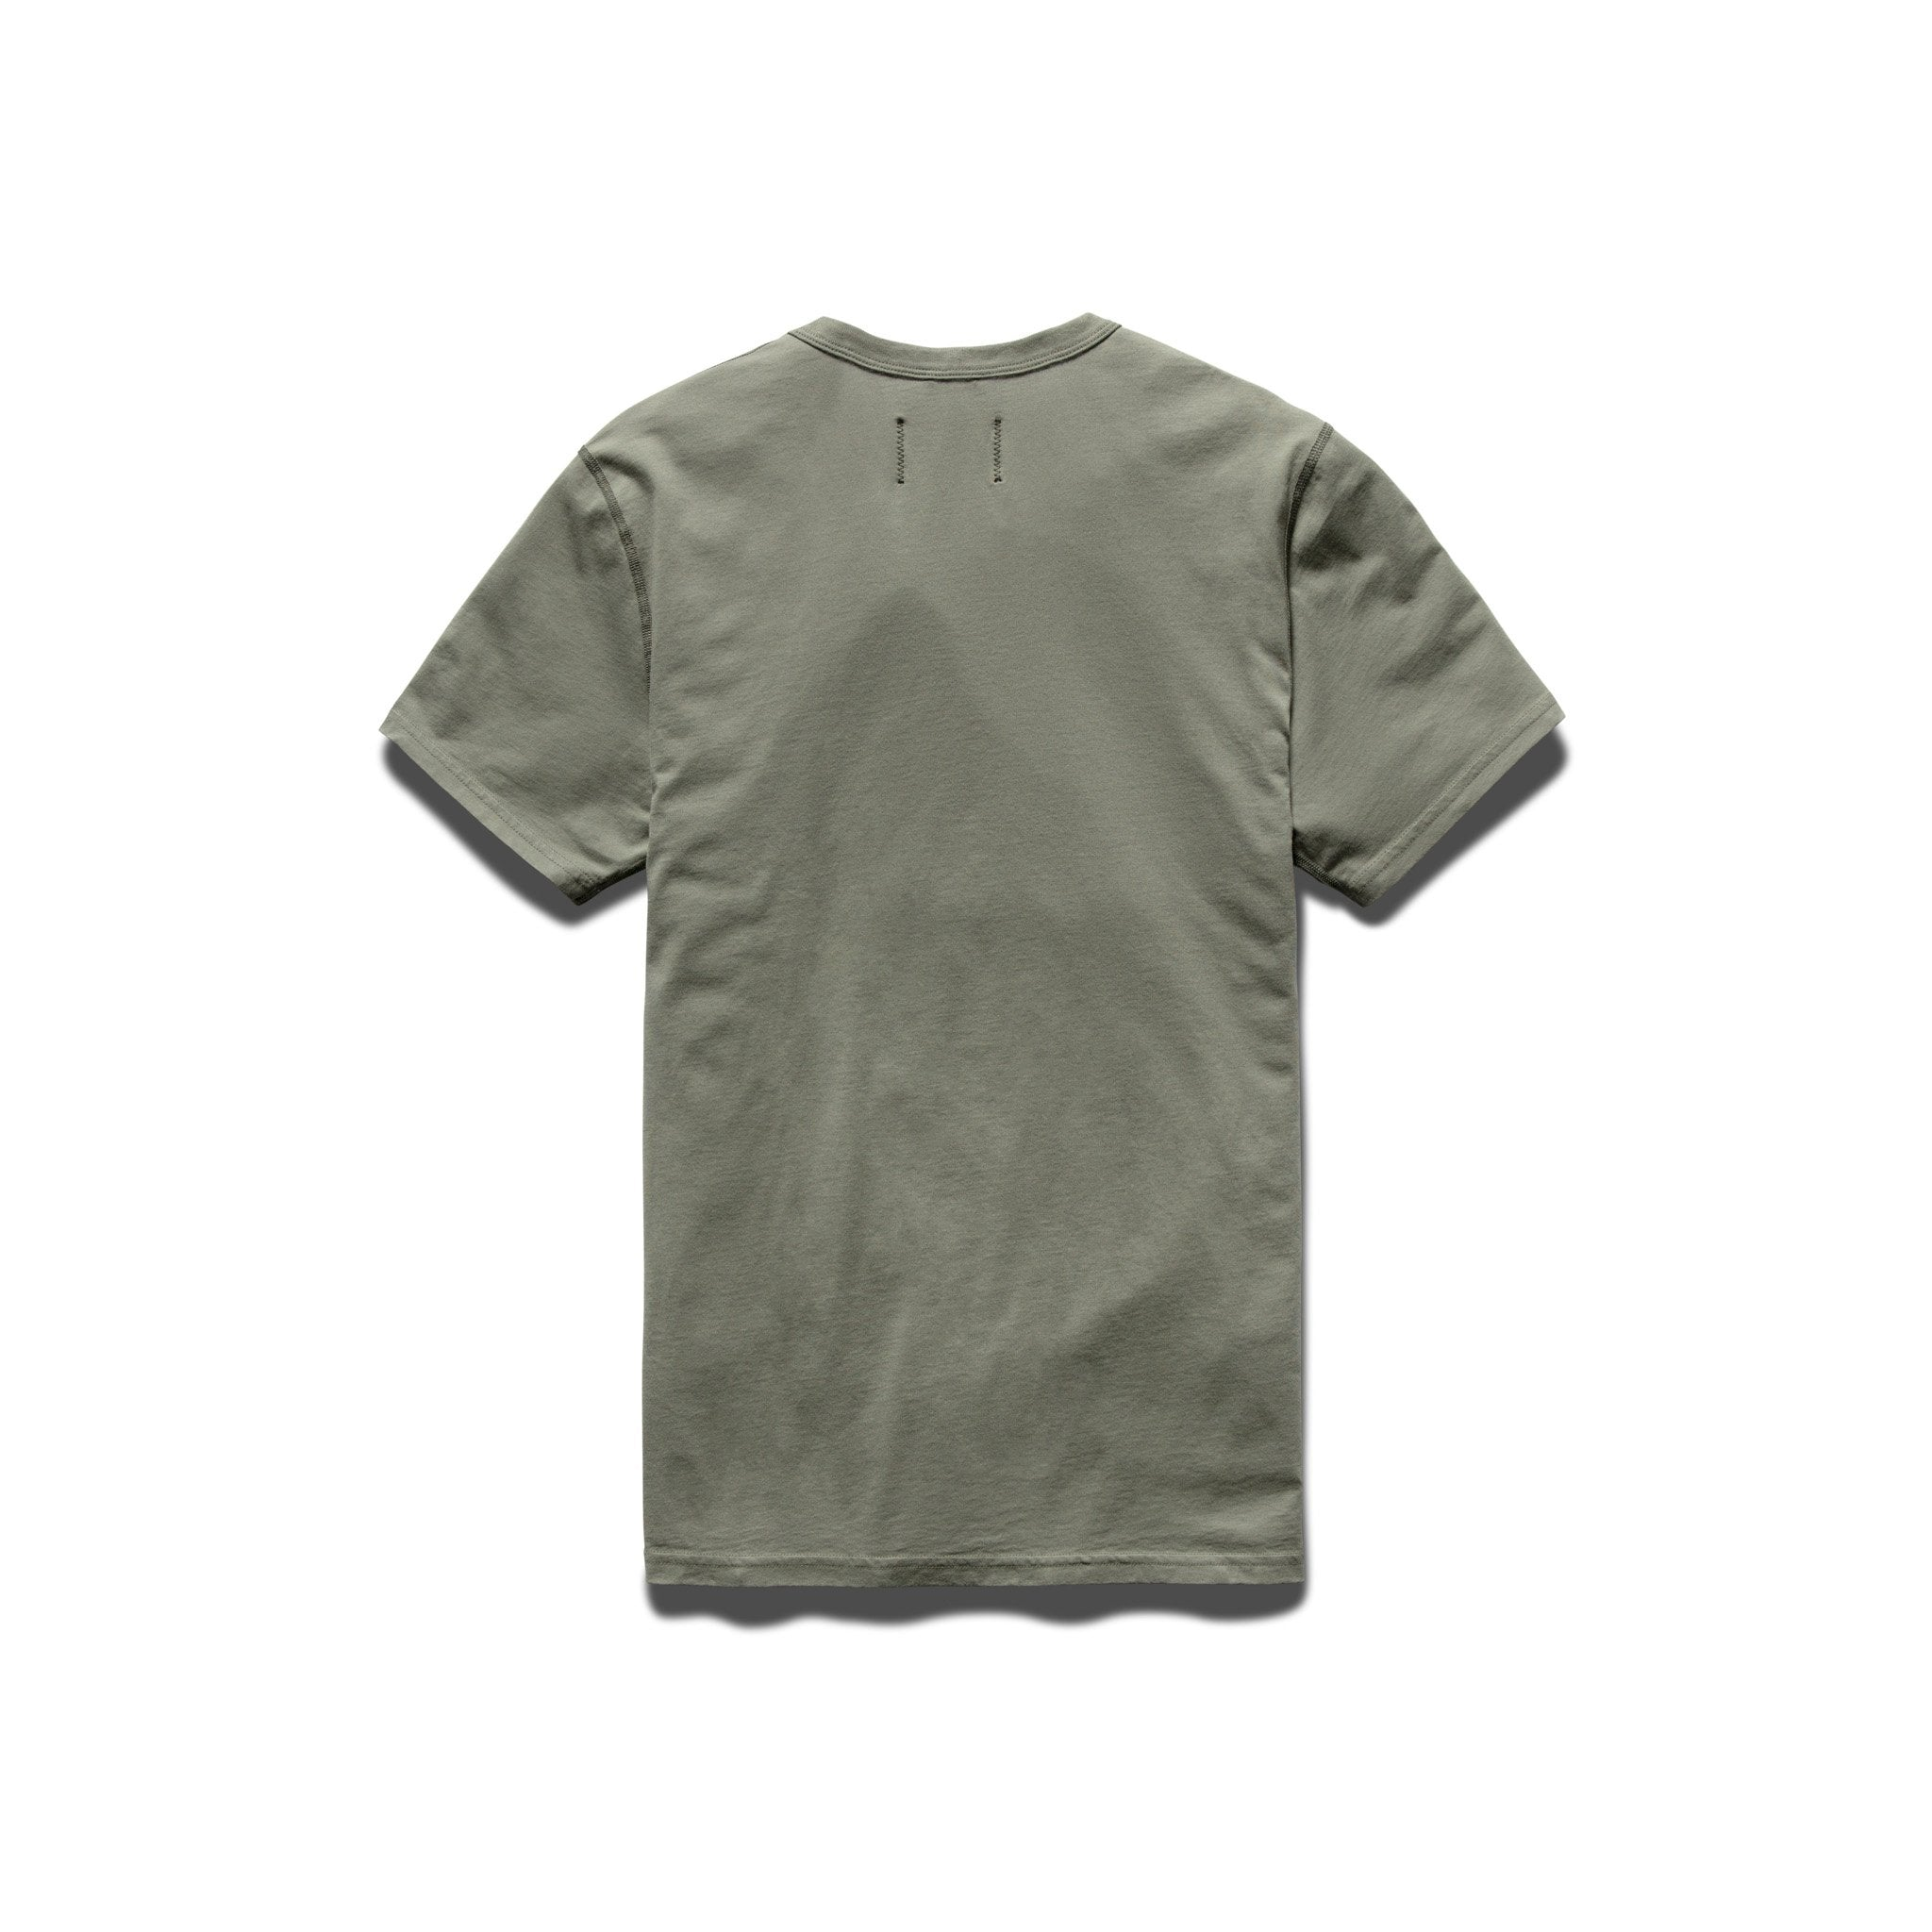 REIGNING CHAMP M'S T-SHIRTS RINGSPUN JERSEY T-SHIRT